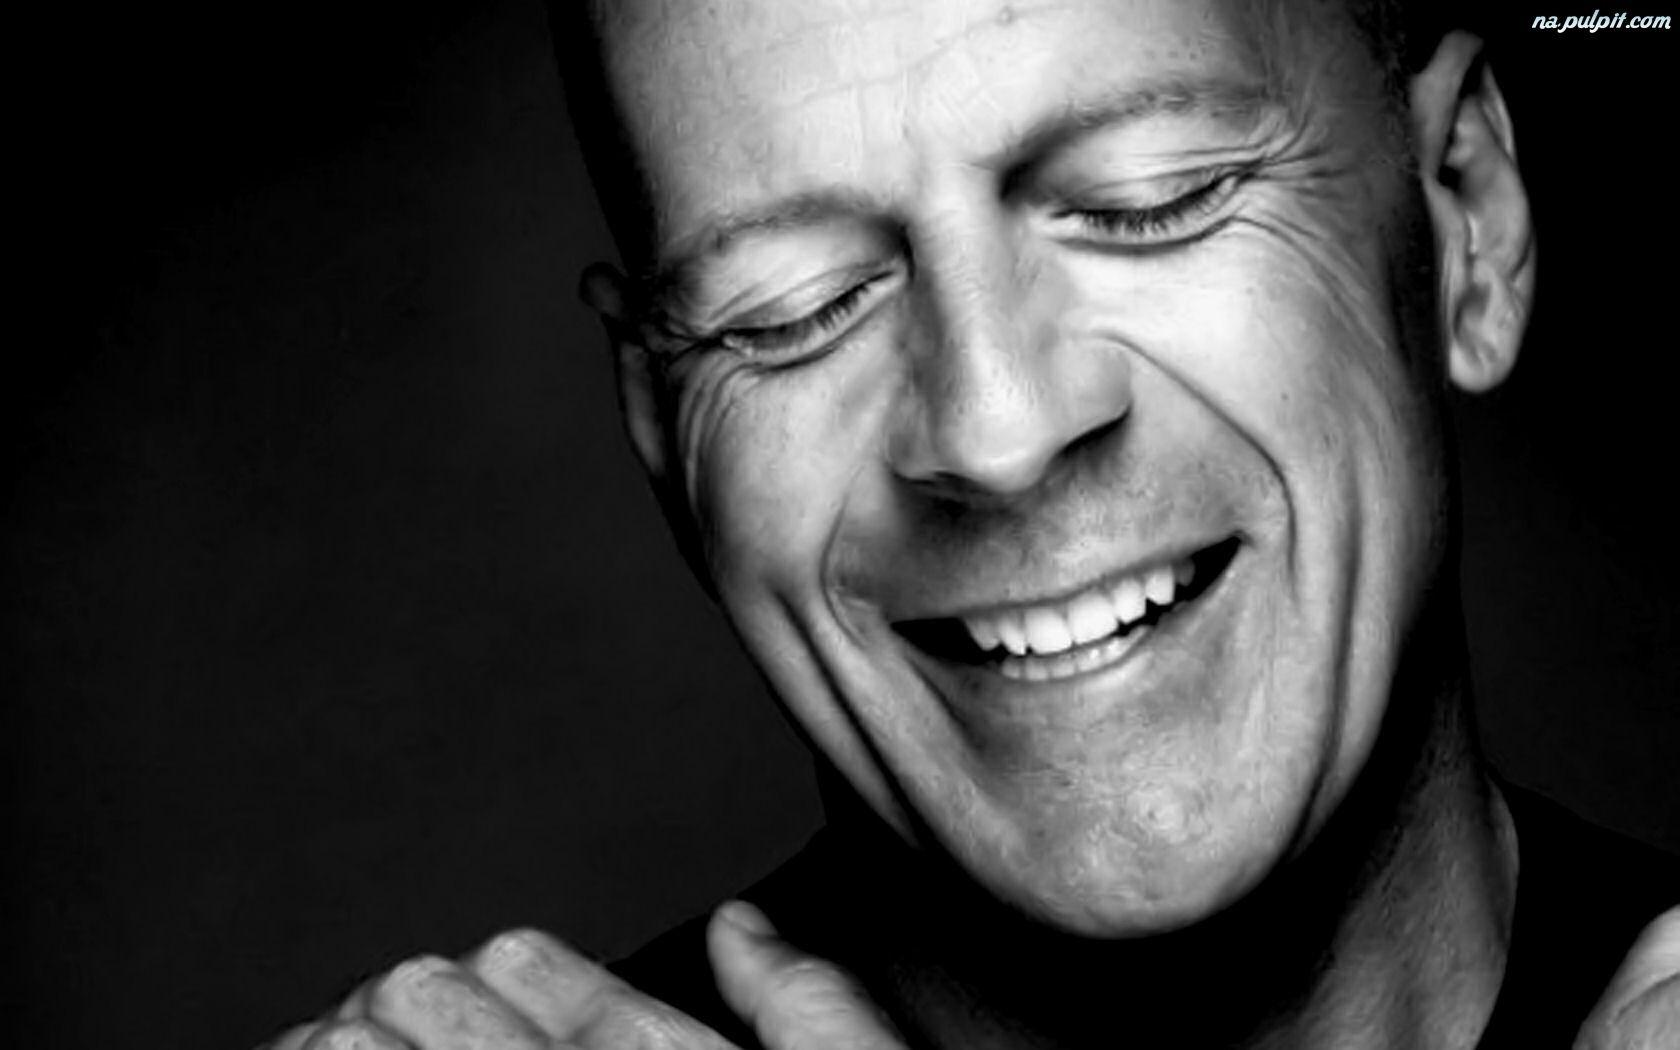 Bruce Willis Wallpapers HD | Fotosdefamosos.es